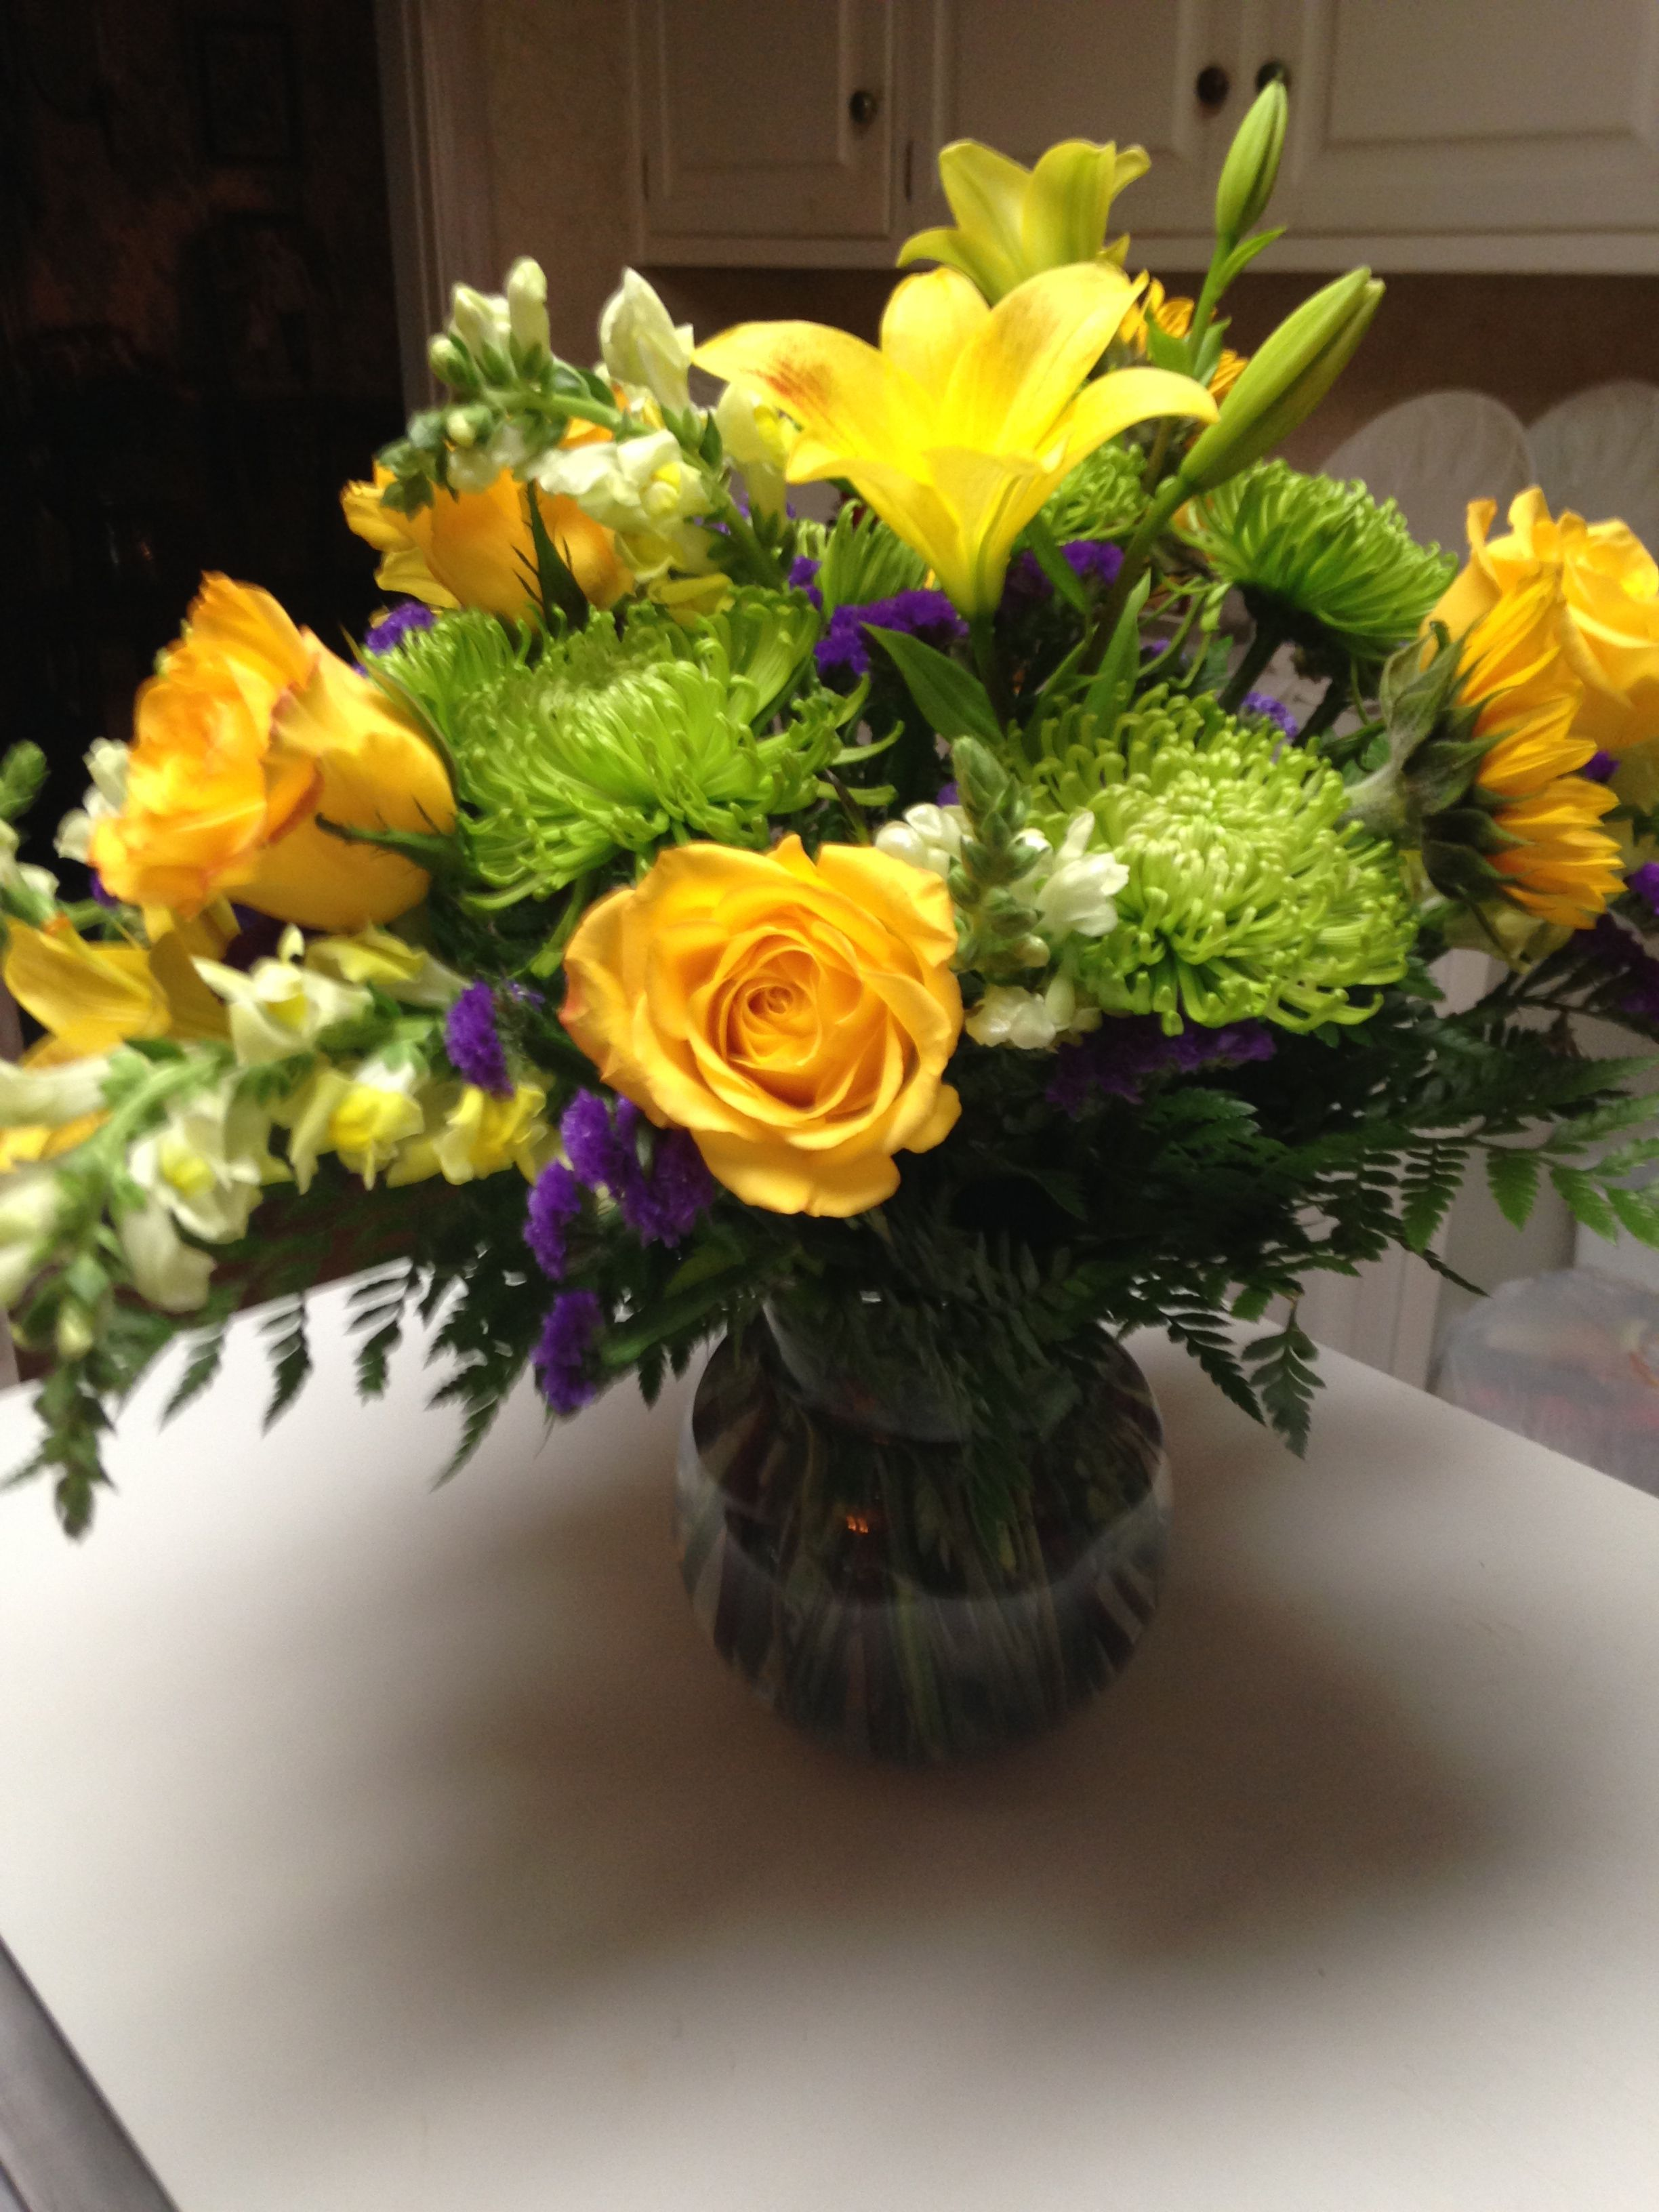 Beautiful flowers given to me for my birthday love